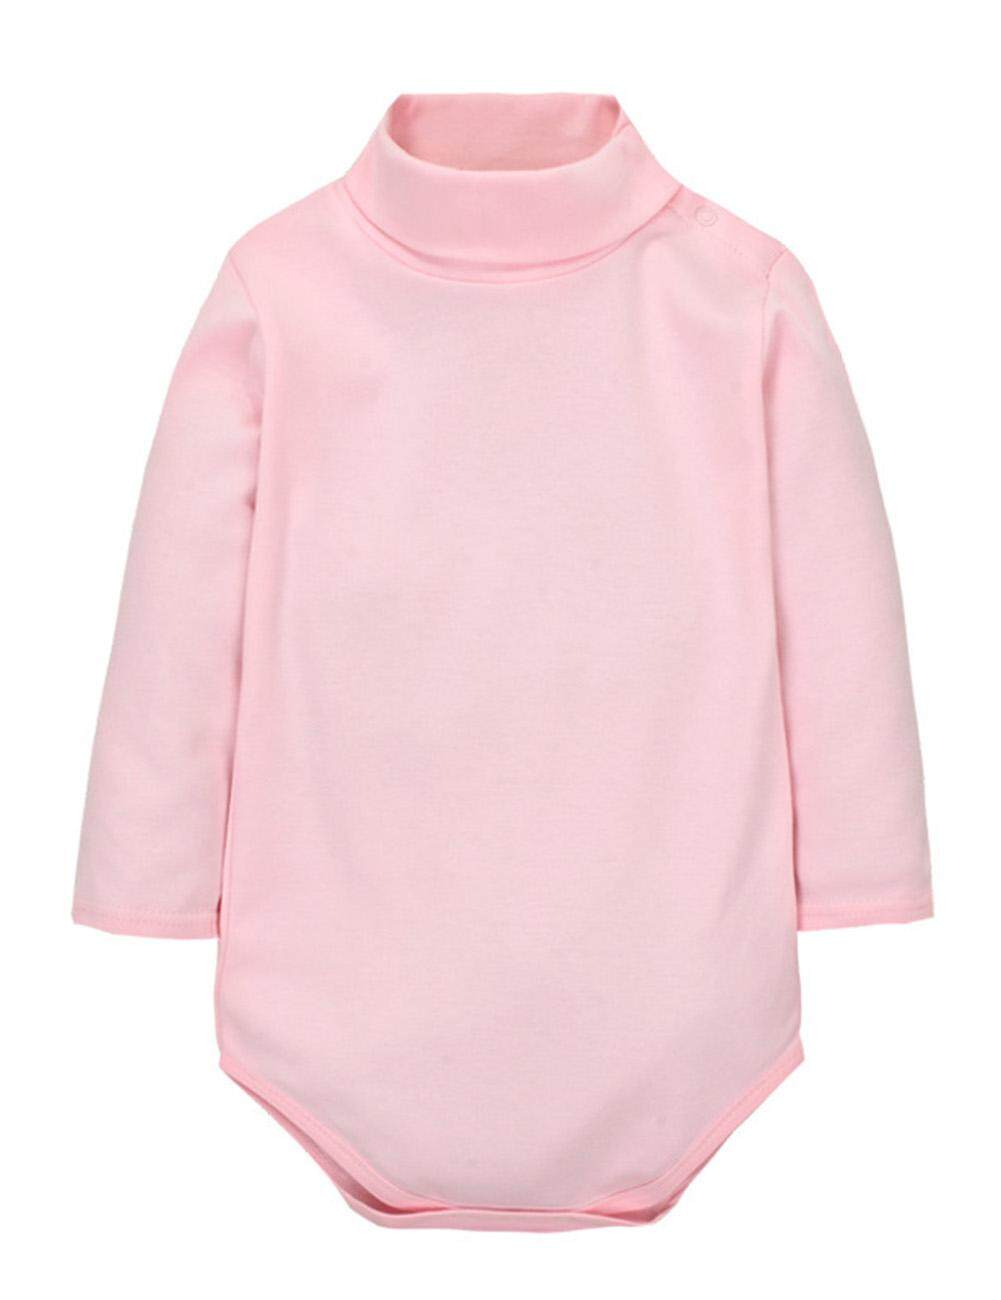 Rd Newborn Baby Soft Cotton Romper Toddler Boys Girls Bodysuit Cute Solid Color High Neck Clothes 【24m Recommended Height 85-90cm】 By Redcolourful.